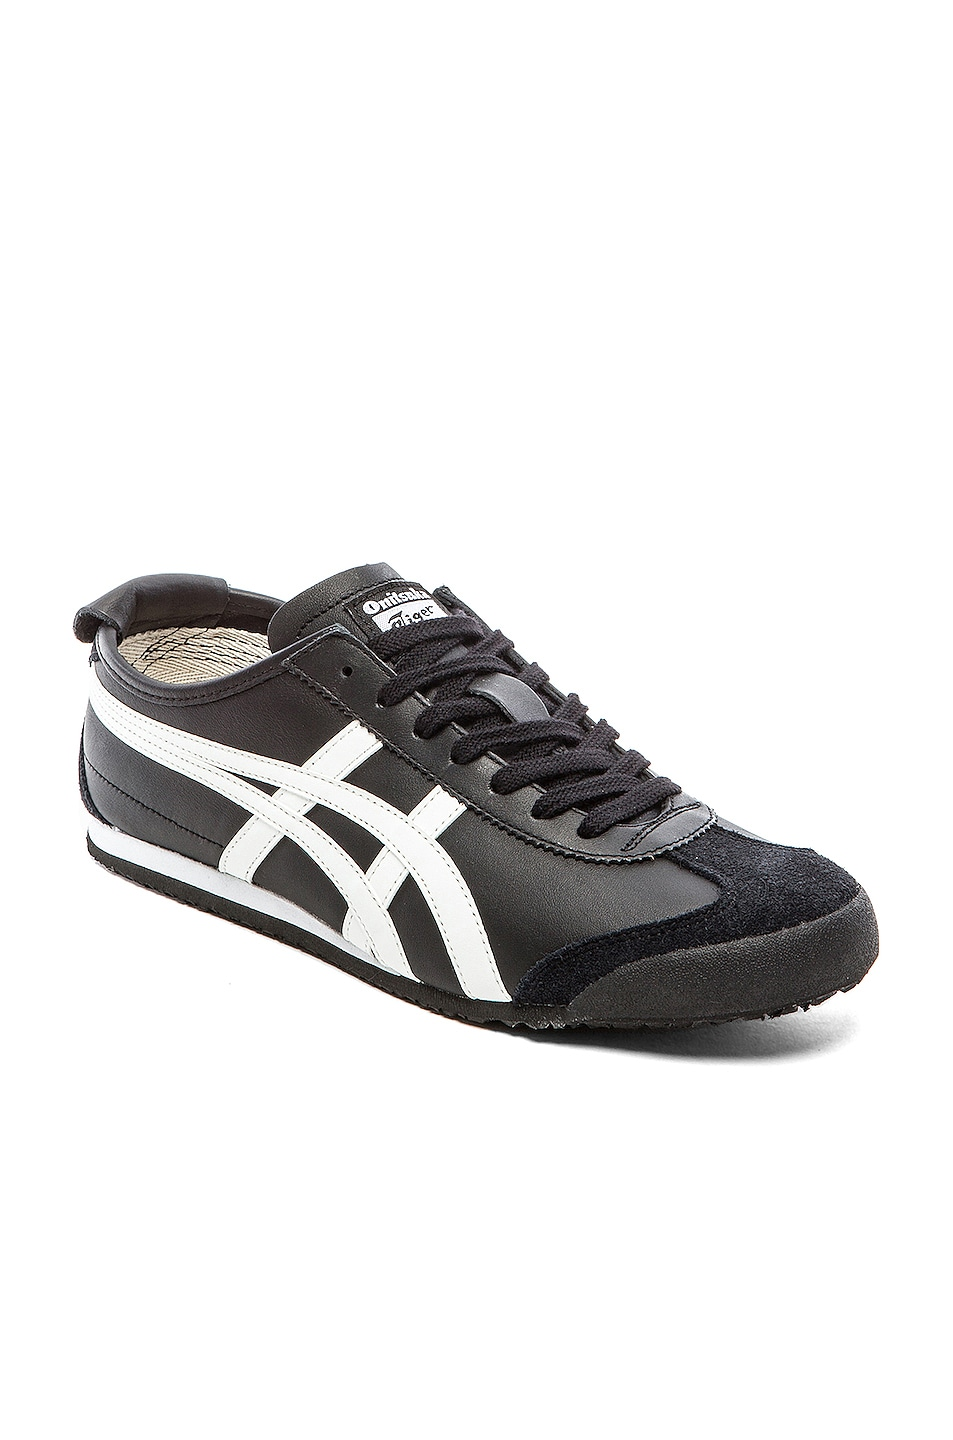 Image 2 of Onitsuka Tiger Mexico 66 in Black White